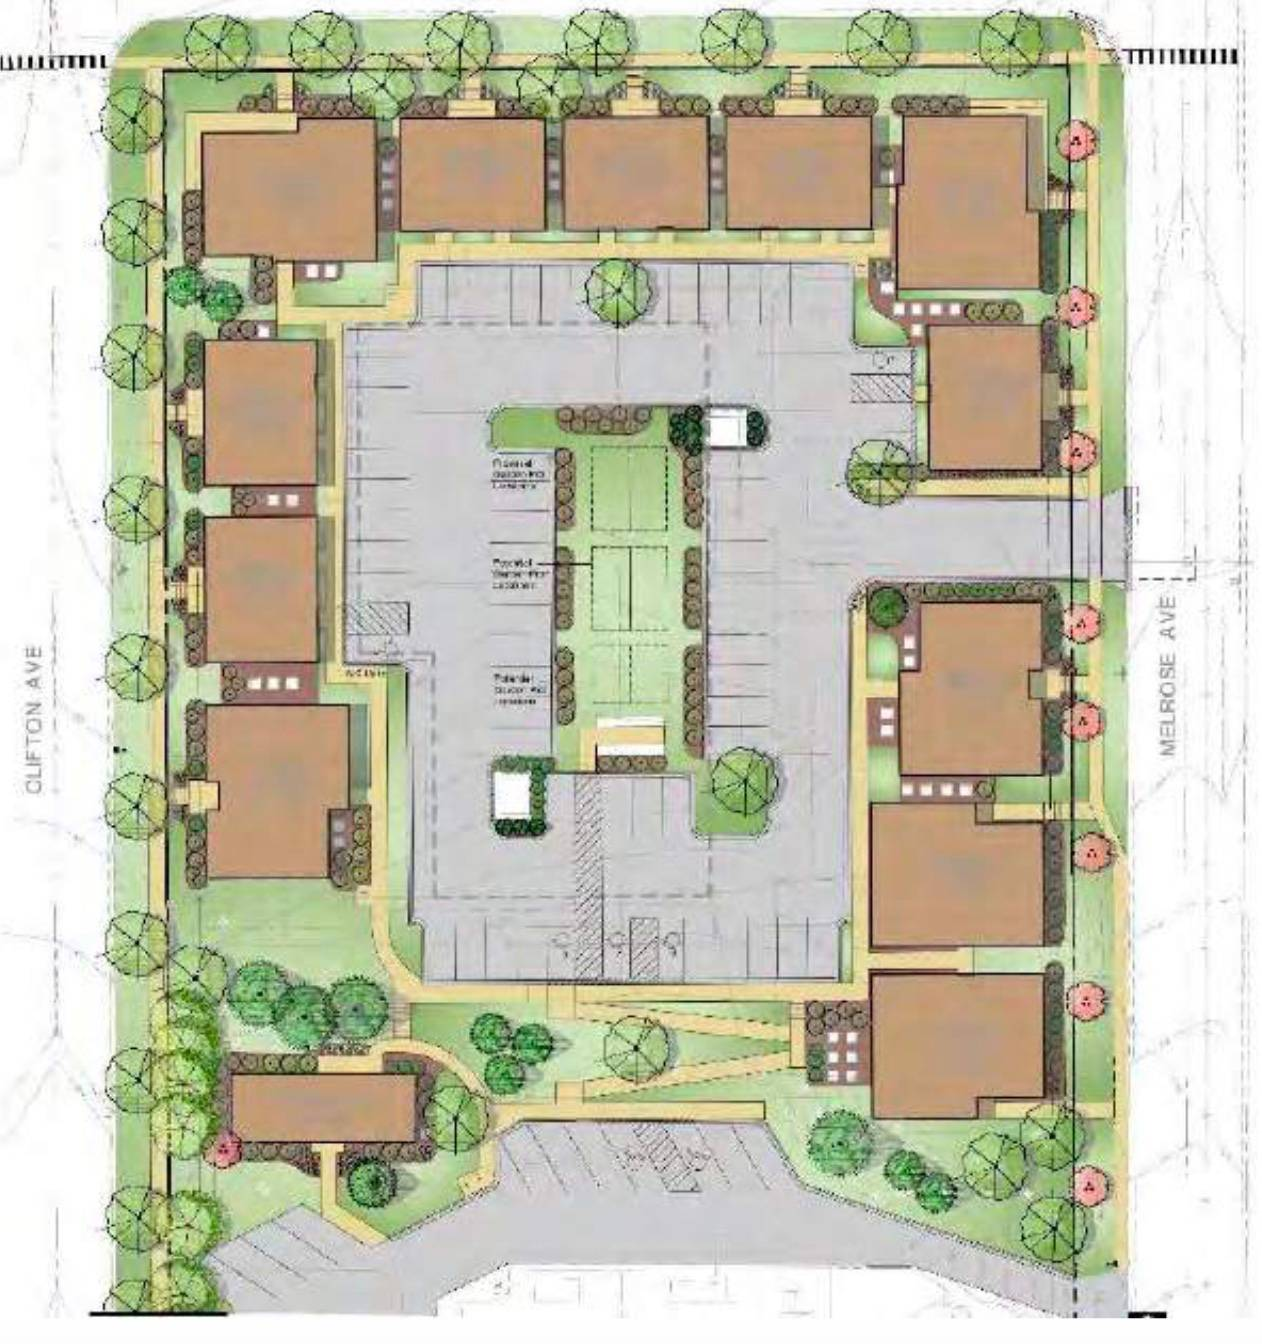 Elgin council gives unanimous 'yes' to affordable housing at former Larkin Center